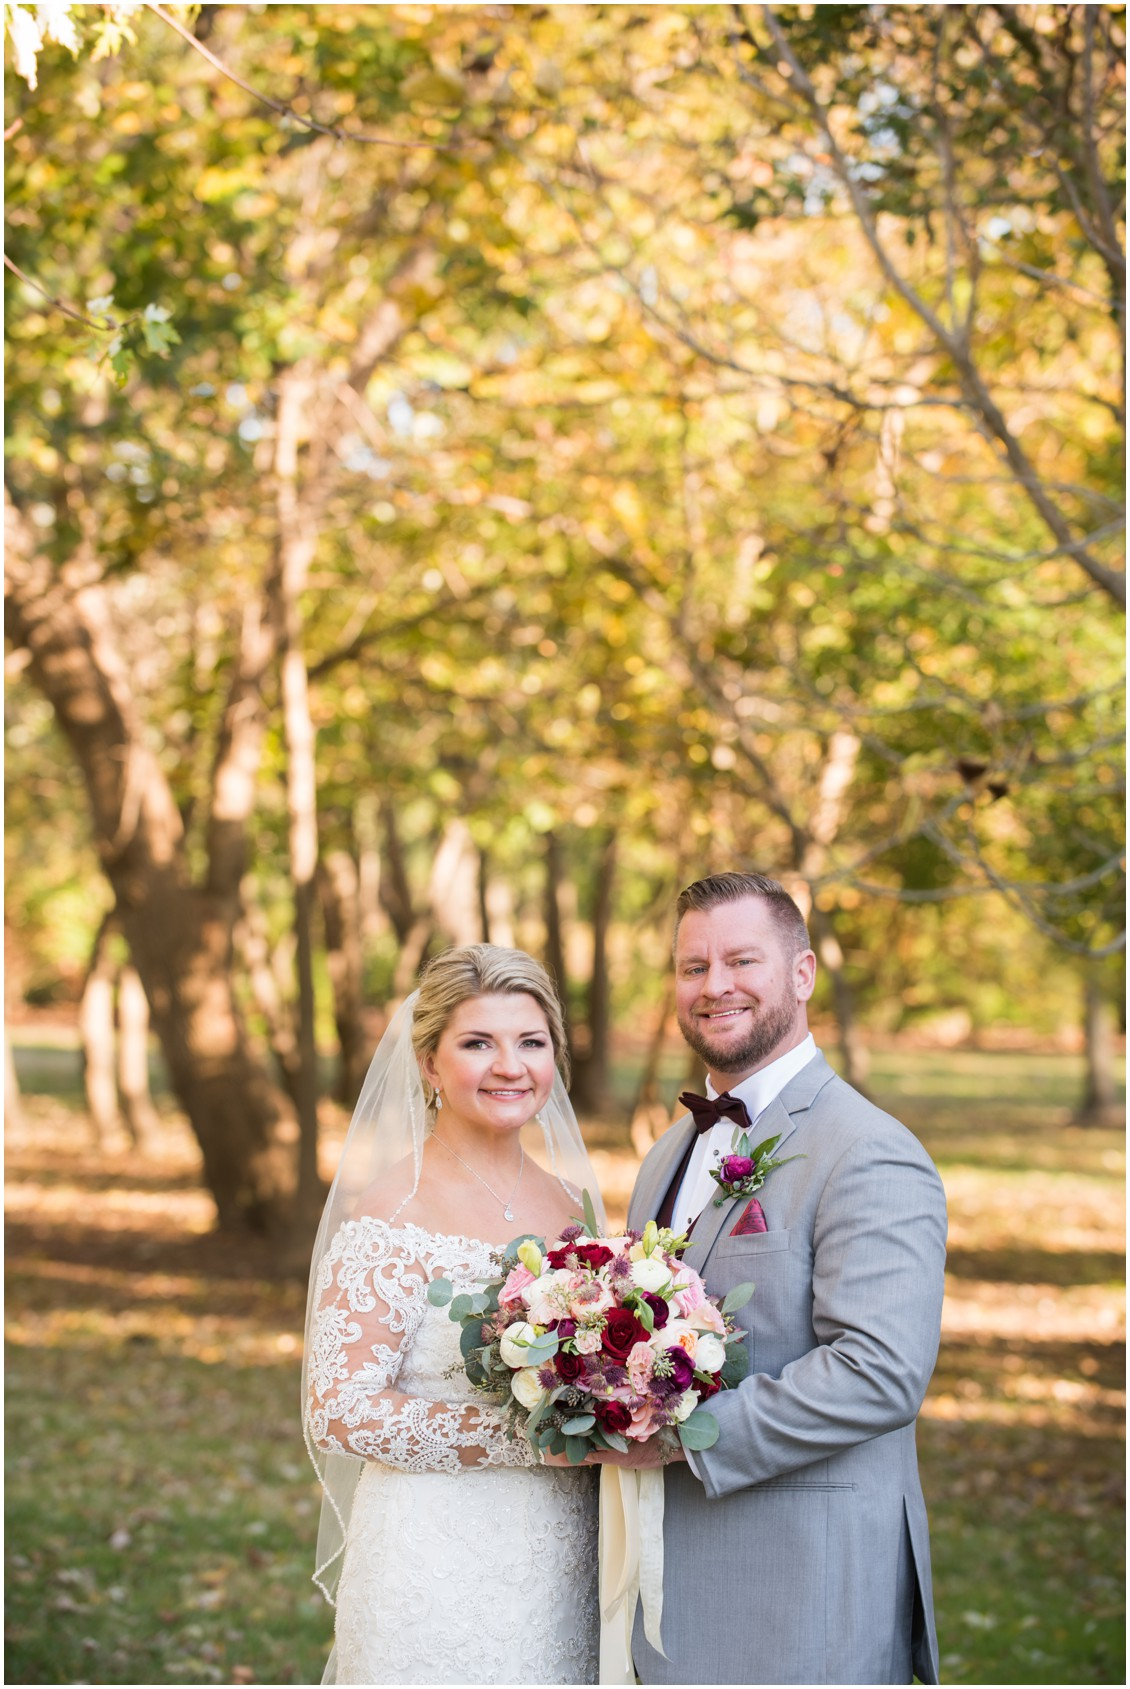 Bride and groom golden hour portrait waterfront venue | My Eastern Shore Wedding | The Oaks Waterfront Inn | Monteray Farms